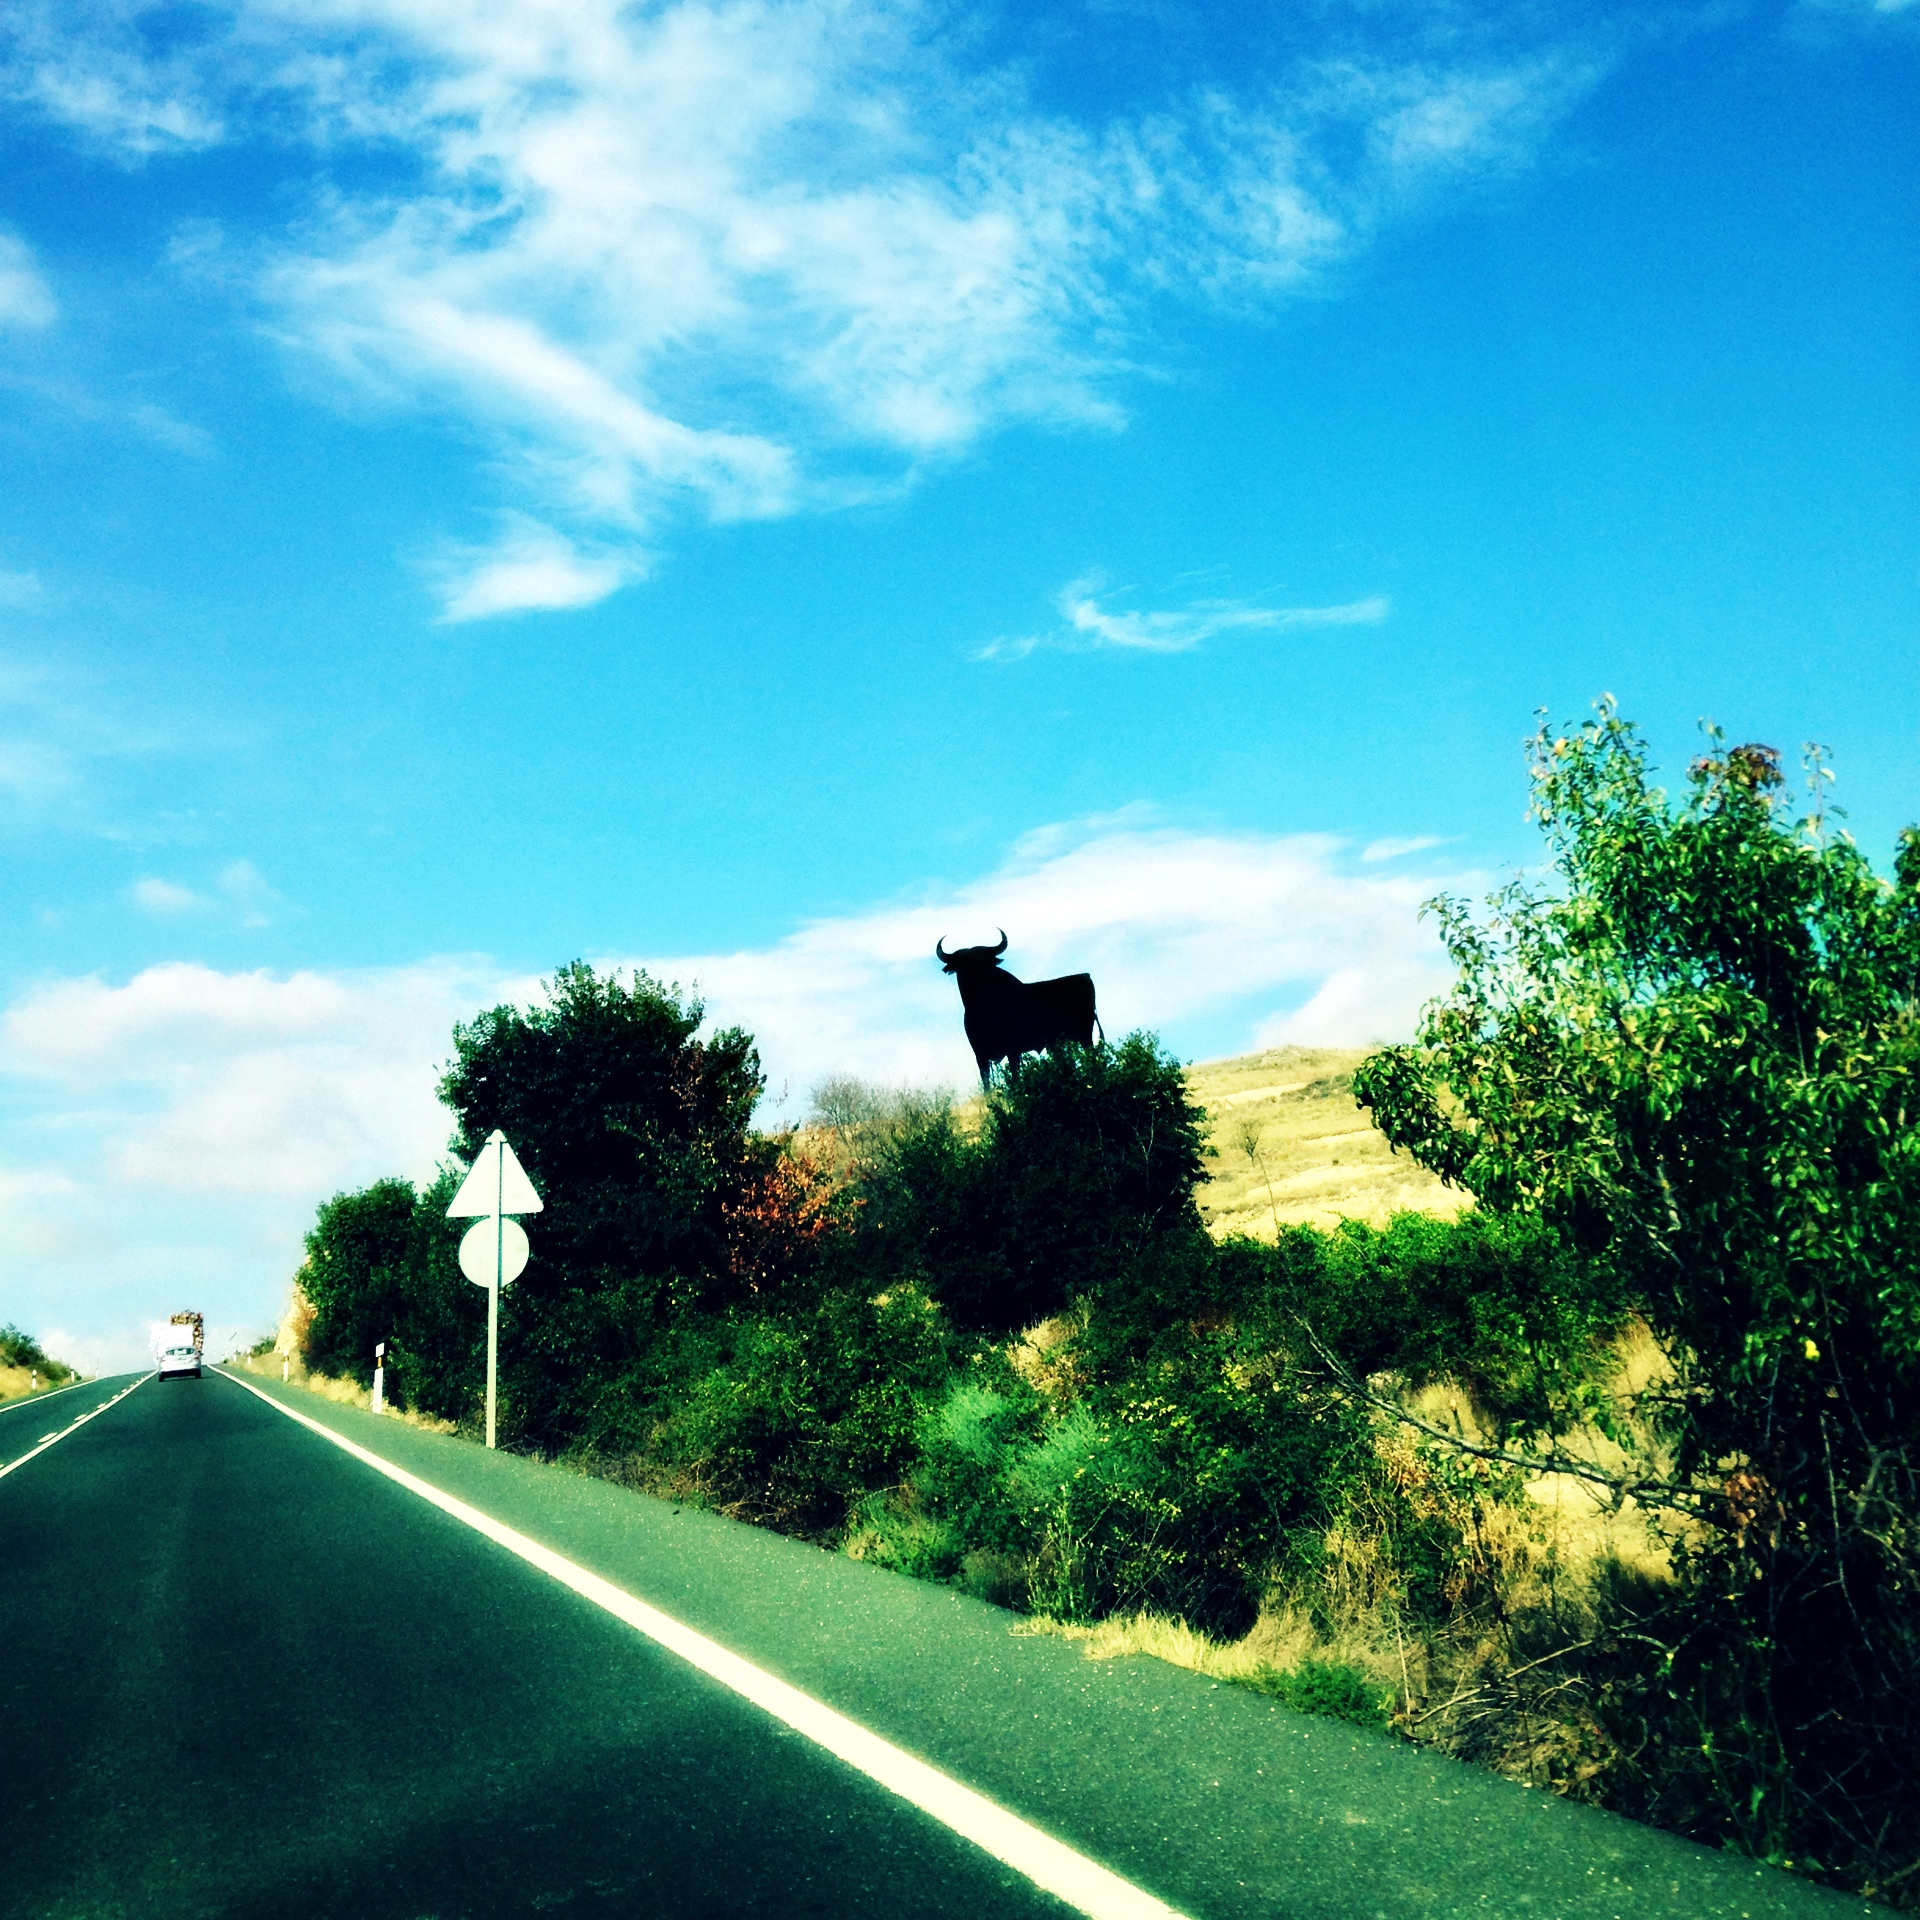 On the road again by Pako Campo